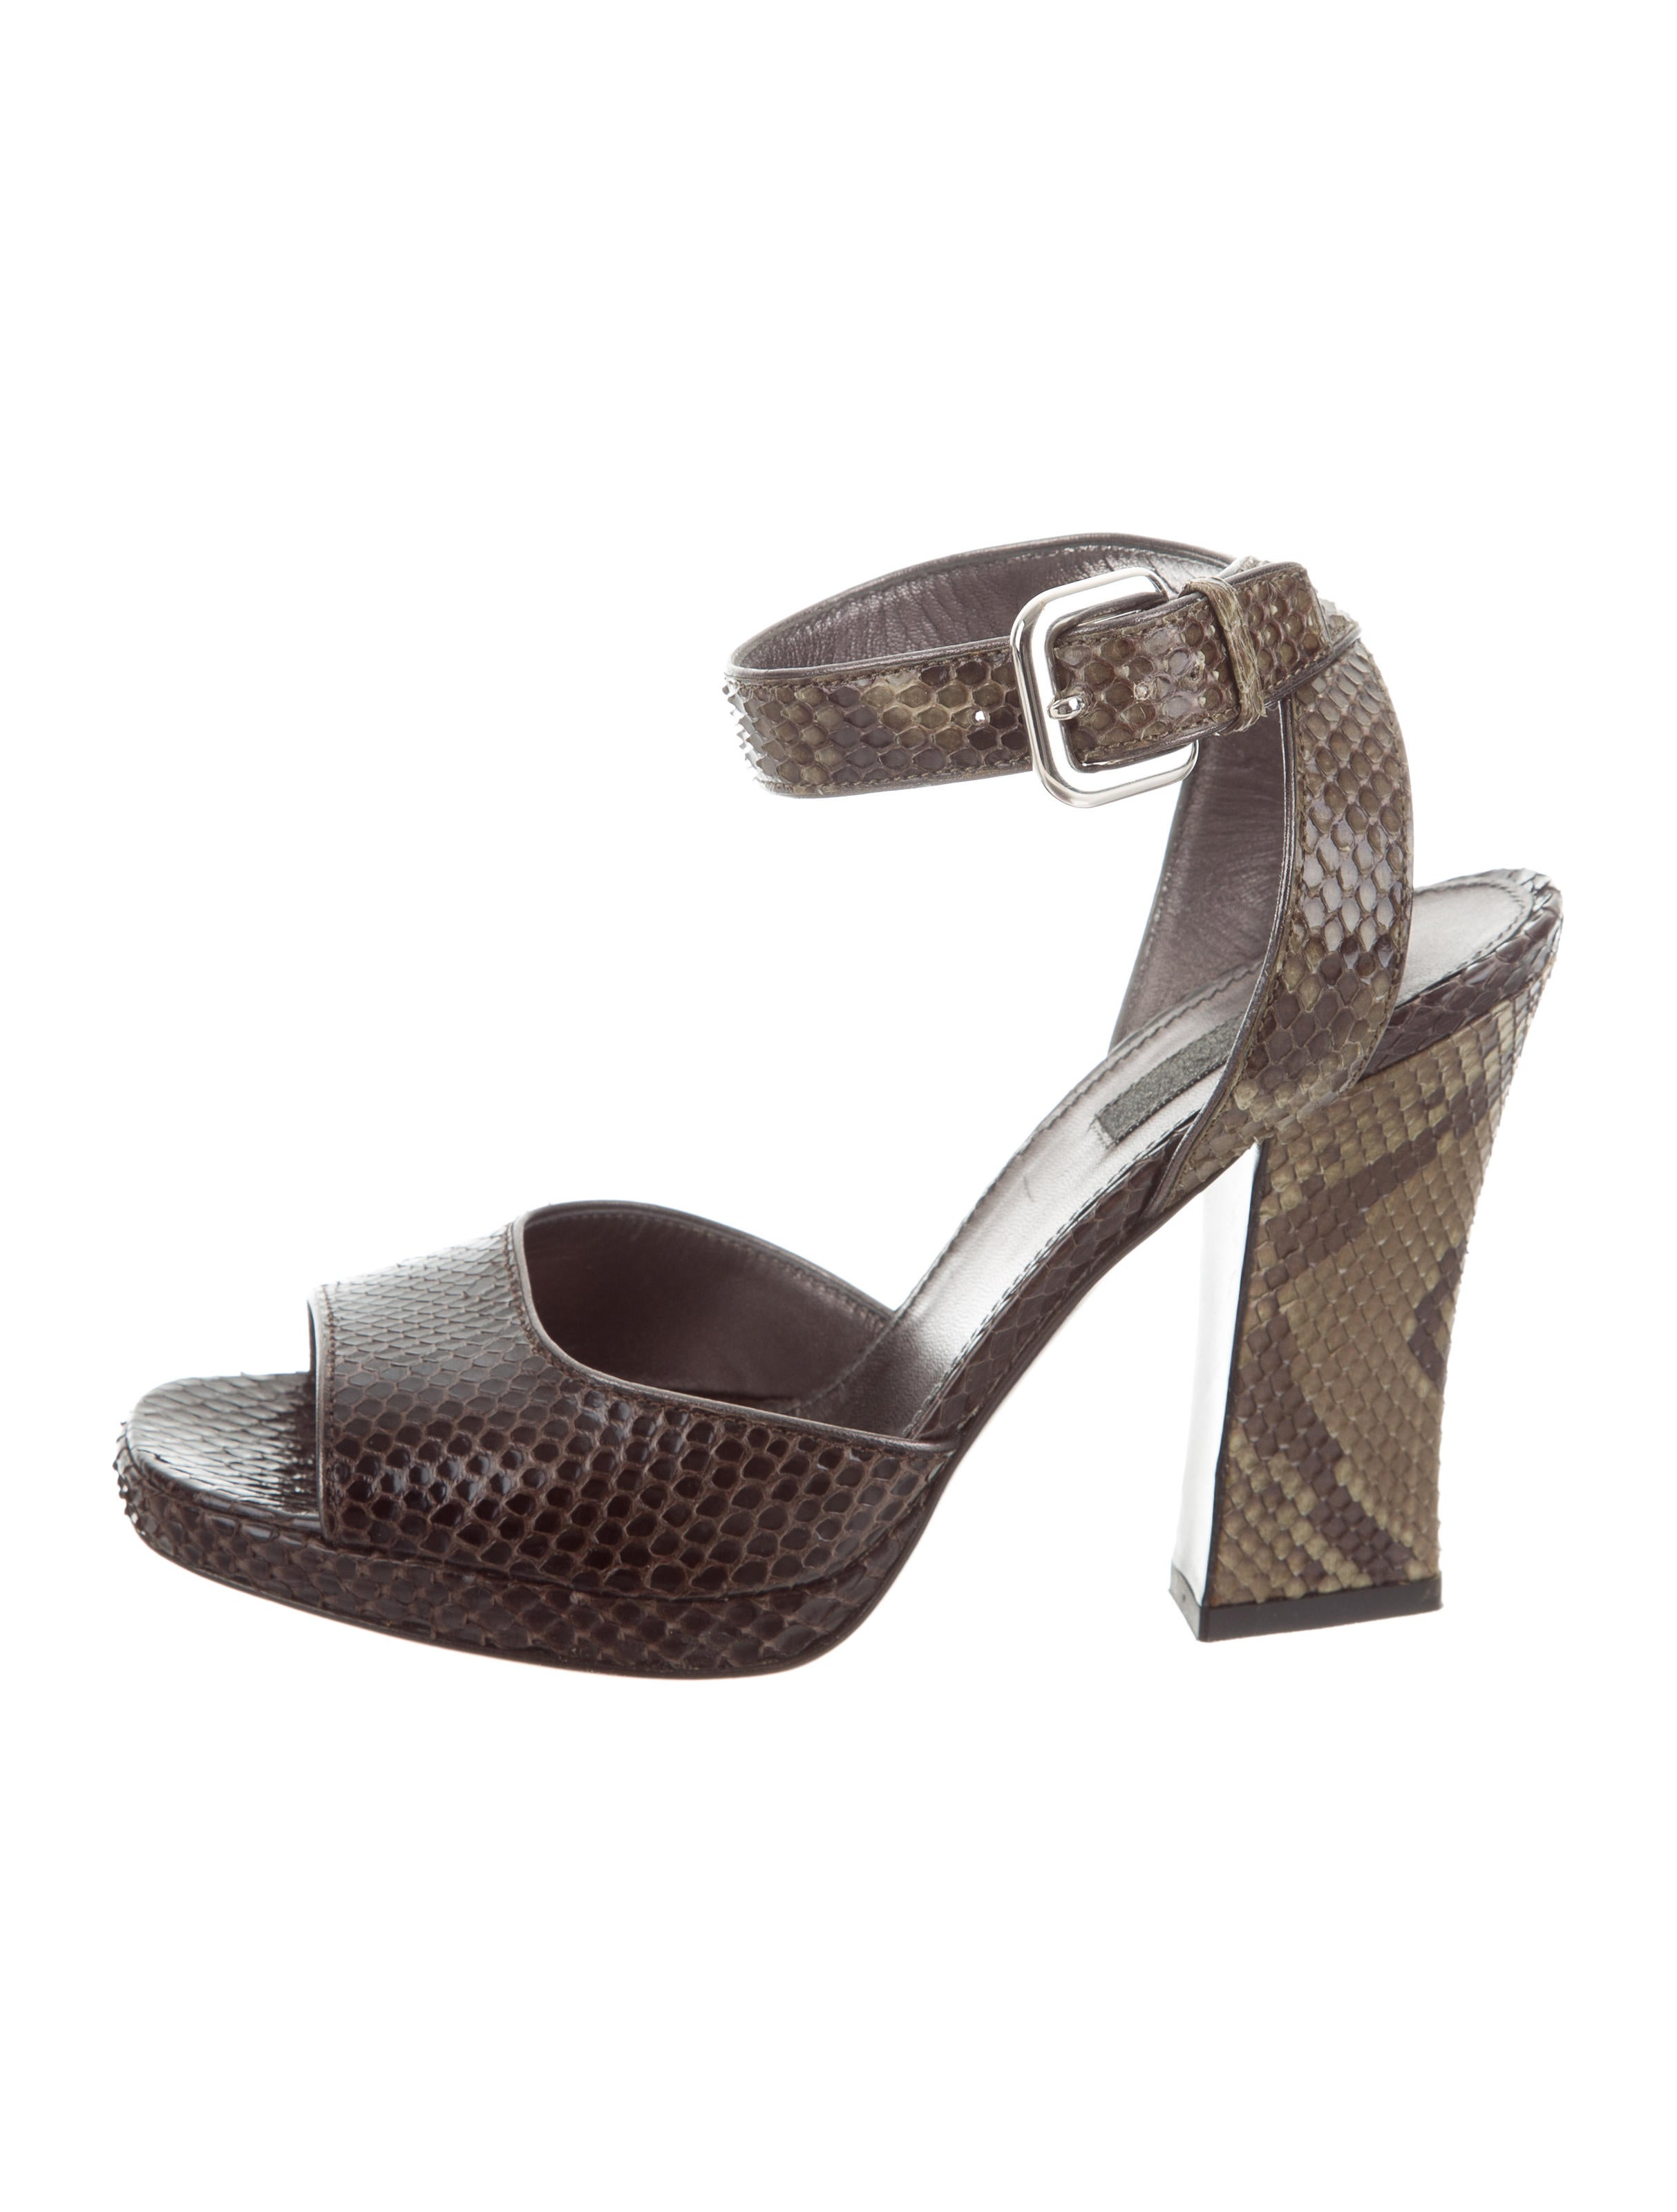 outlet wide range of under $60 for sale Prada Snakeskin T-Strap Sandals free shipping sale pkHBS1nWm